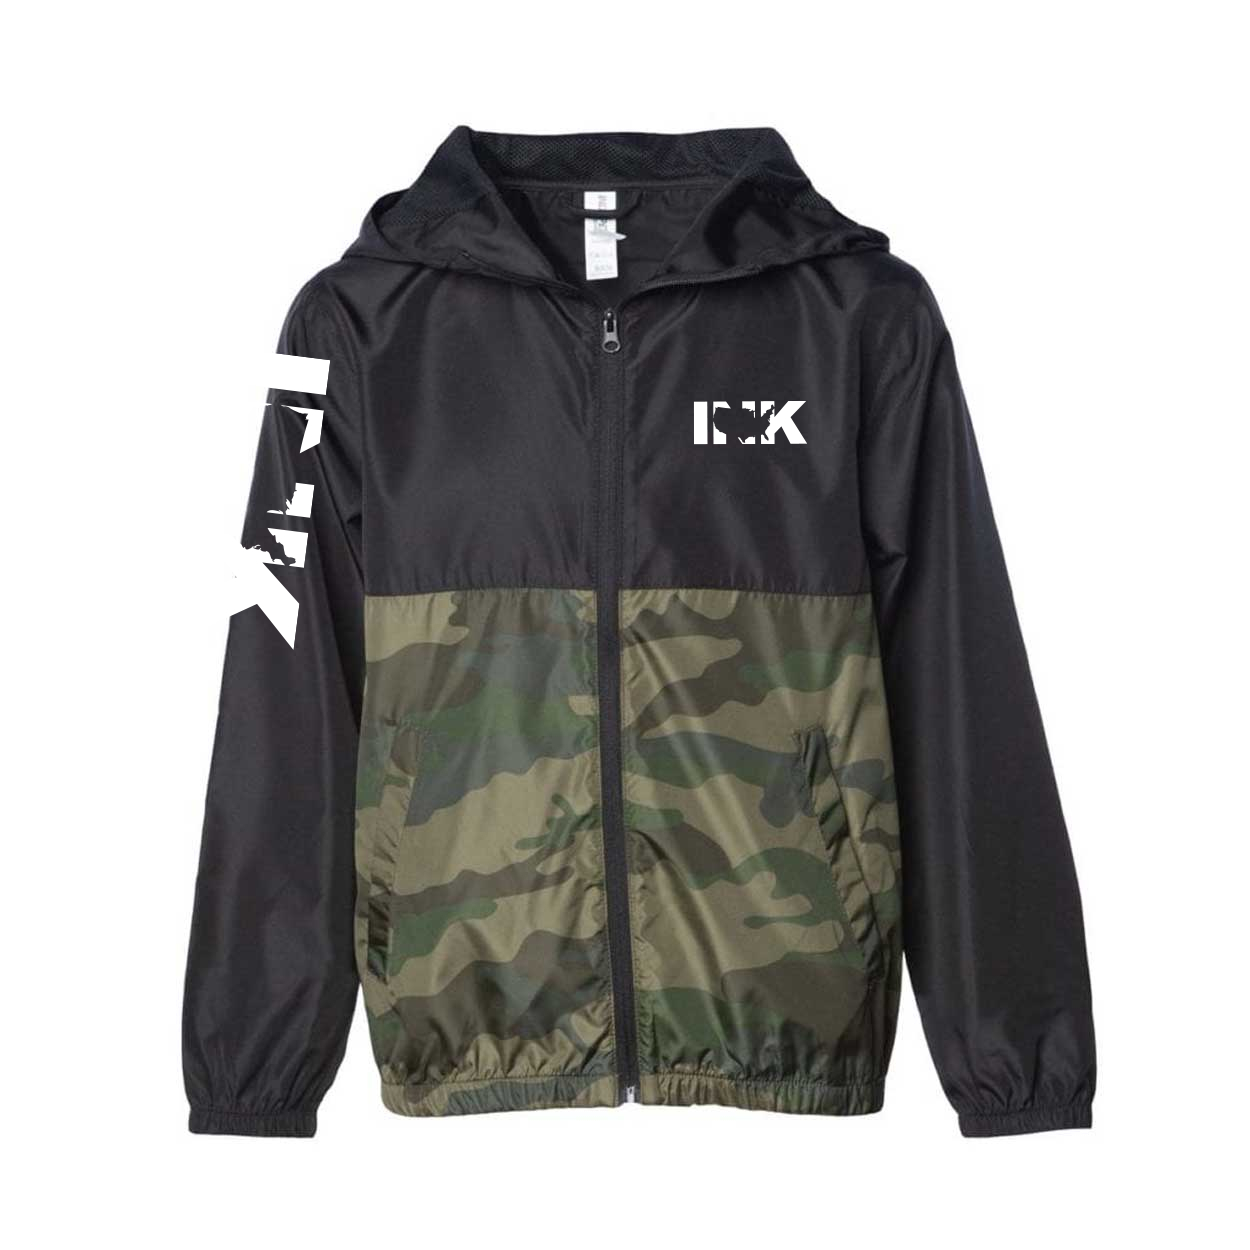 Ink United States Classic Youth Lightweight Windbreaker Black/Forest Camo (White Logo)